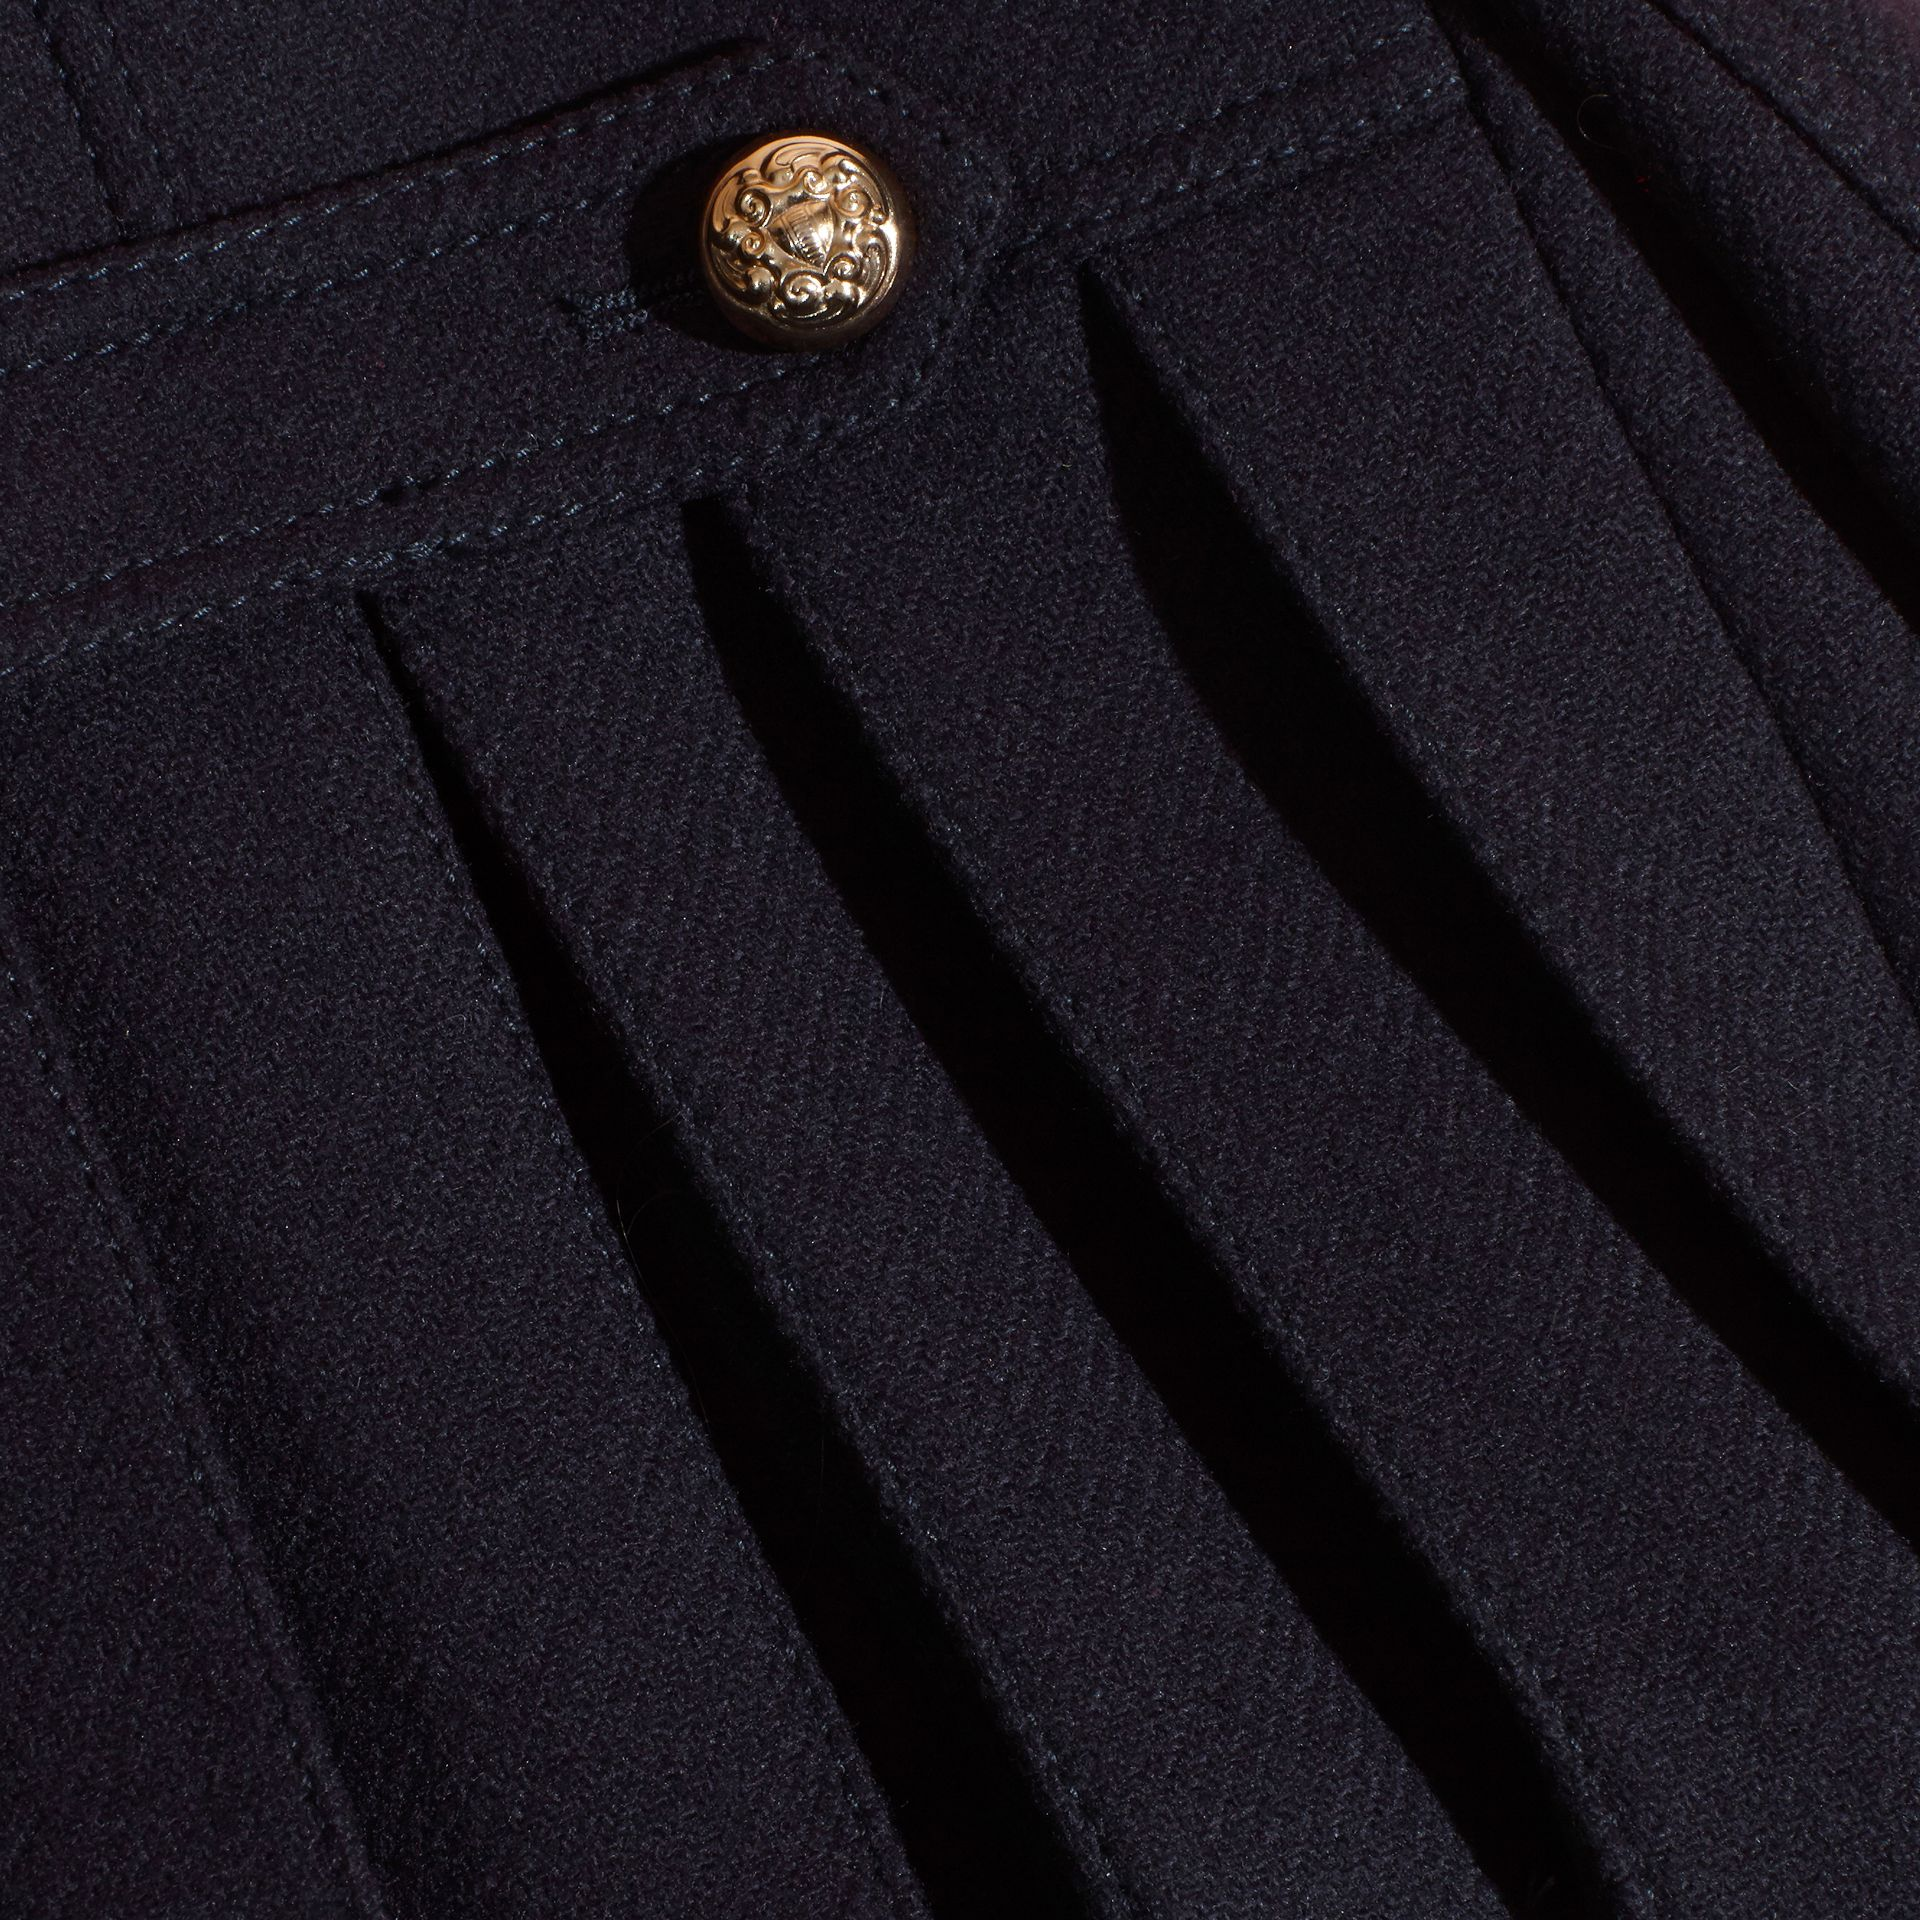 Navy Wool Cashmere Blend Pleat Detail Military Pea Coat - gallery image 2